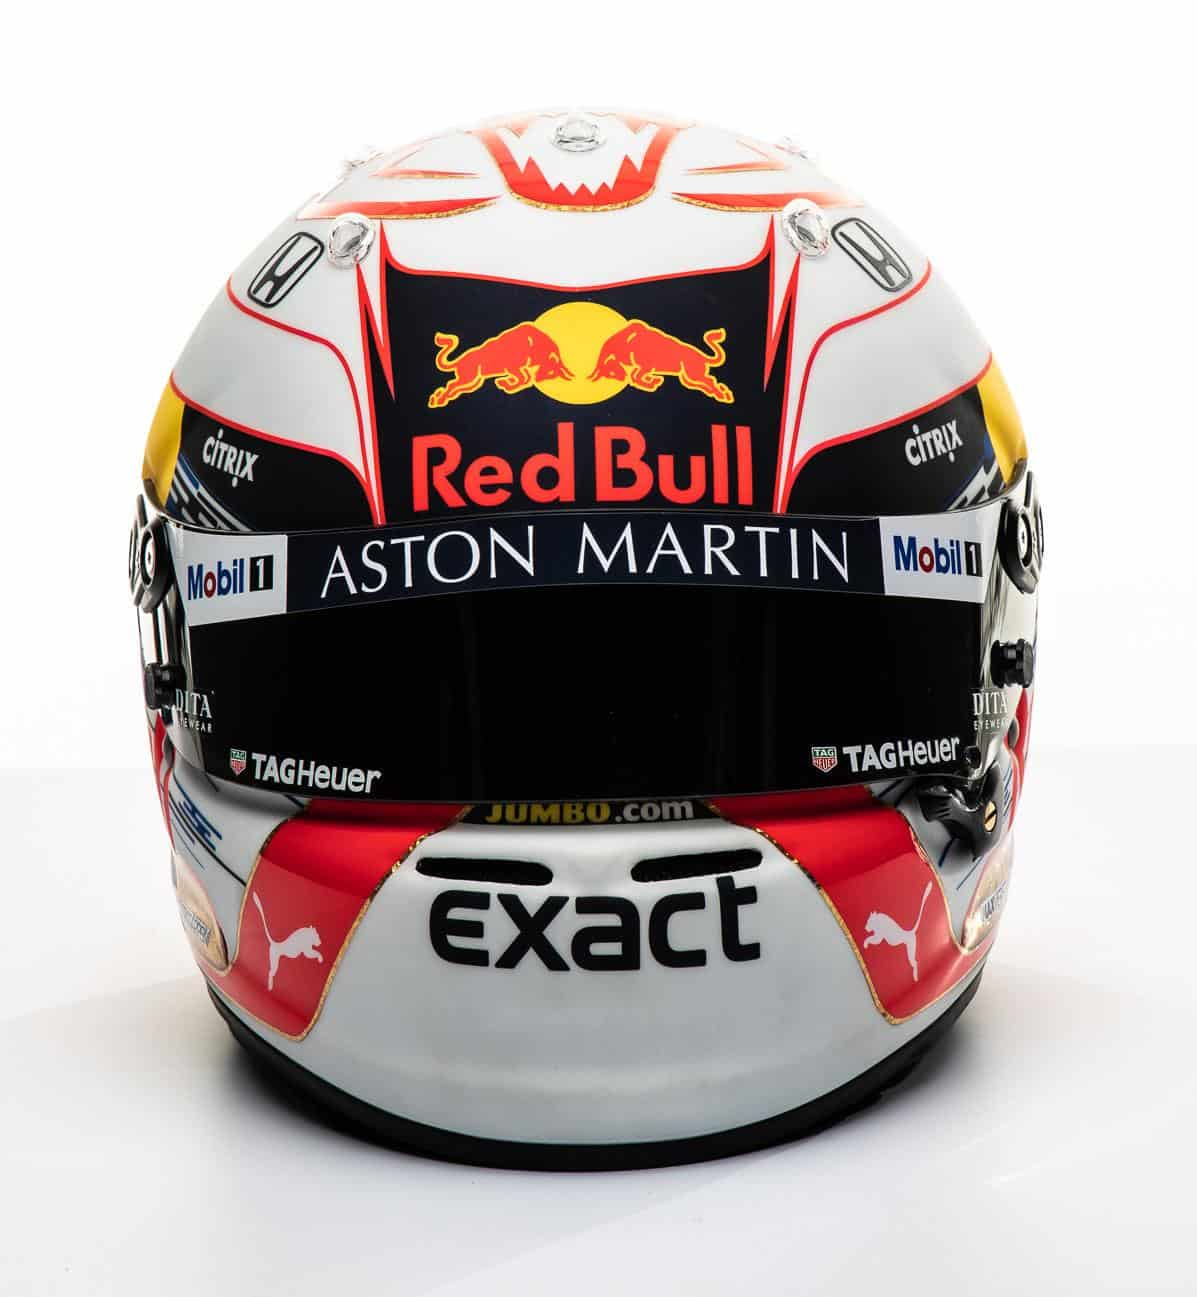 2019 F1 Max Verstappen Red Bull Honda helmet front Photo Red Bull Edited by MAXF1net